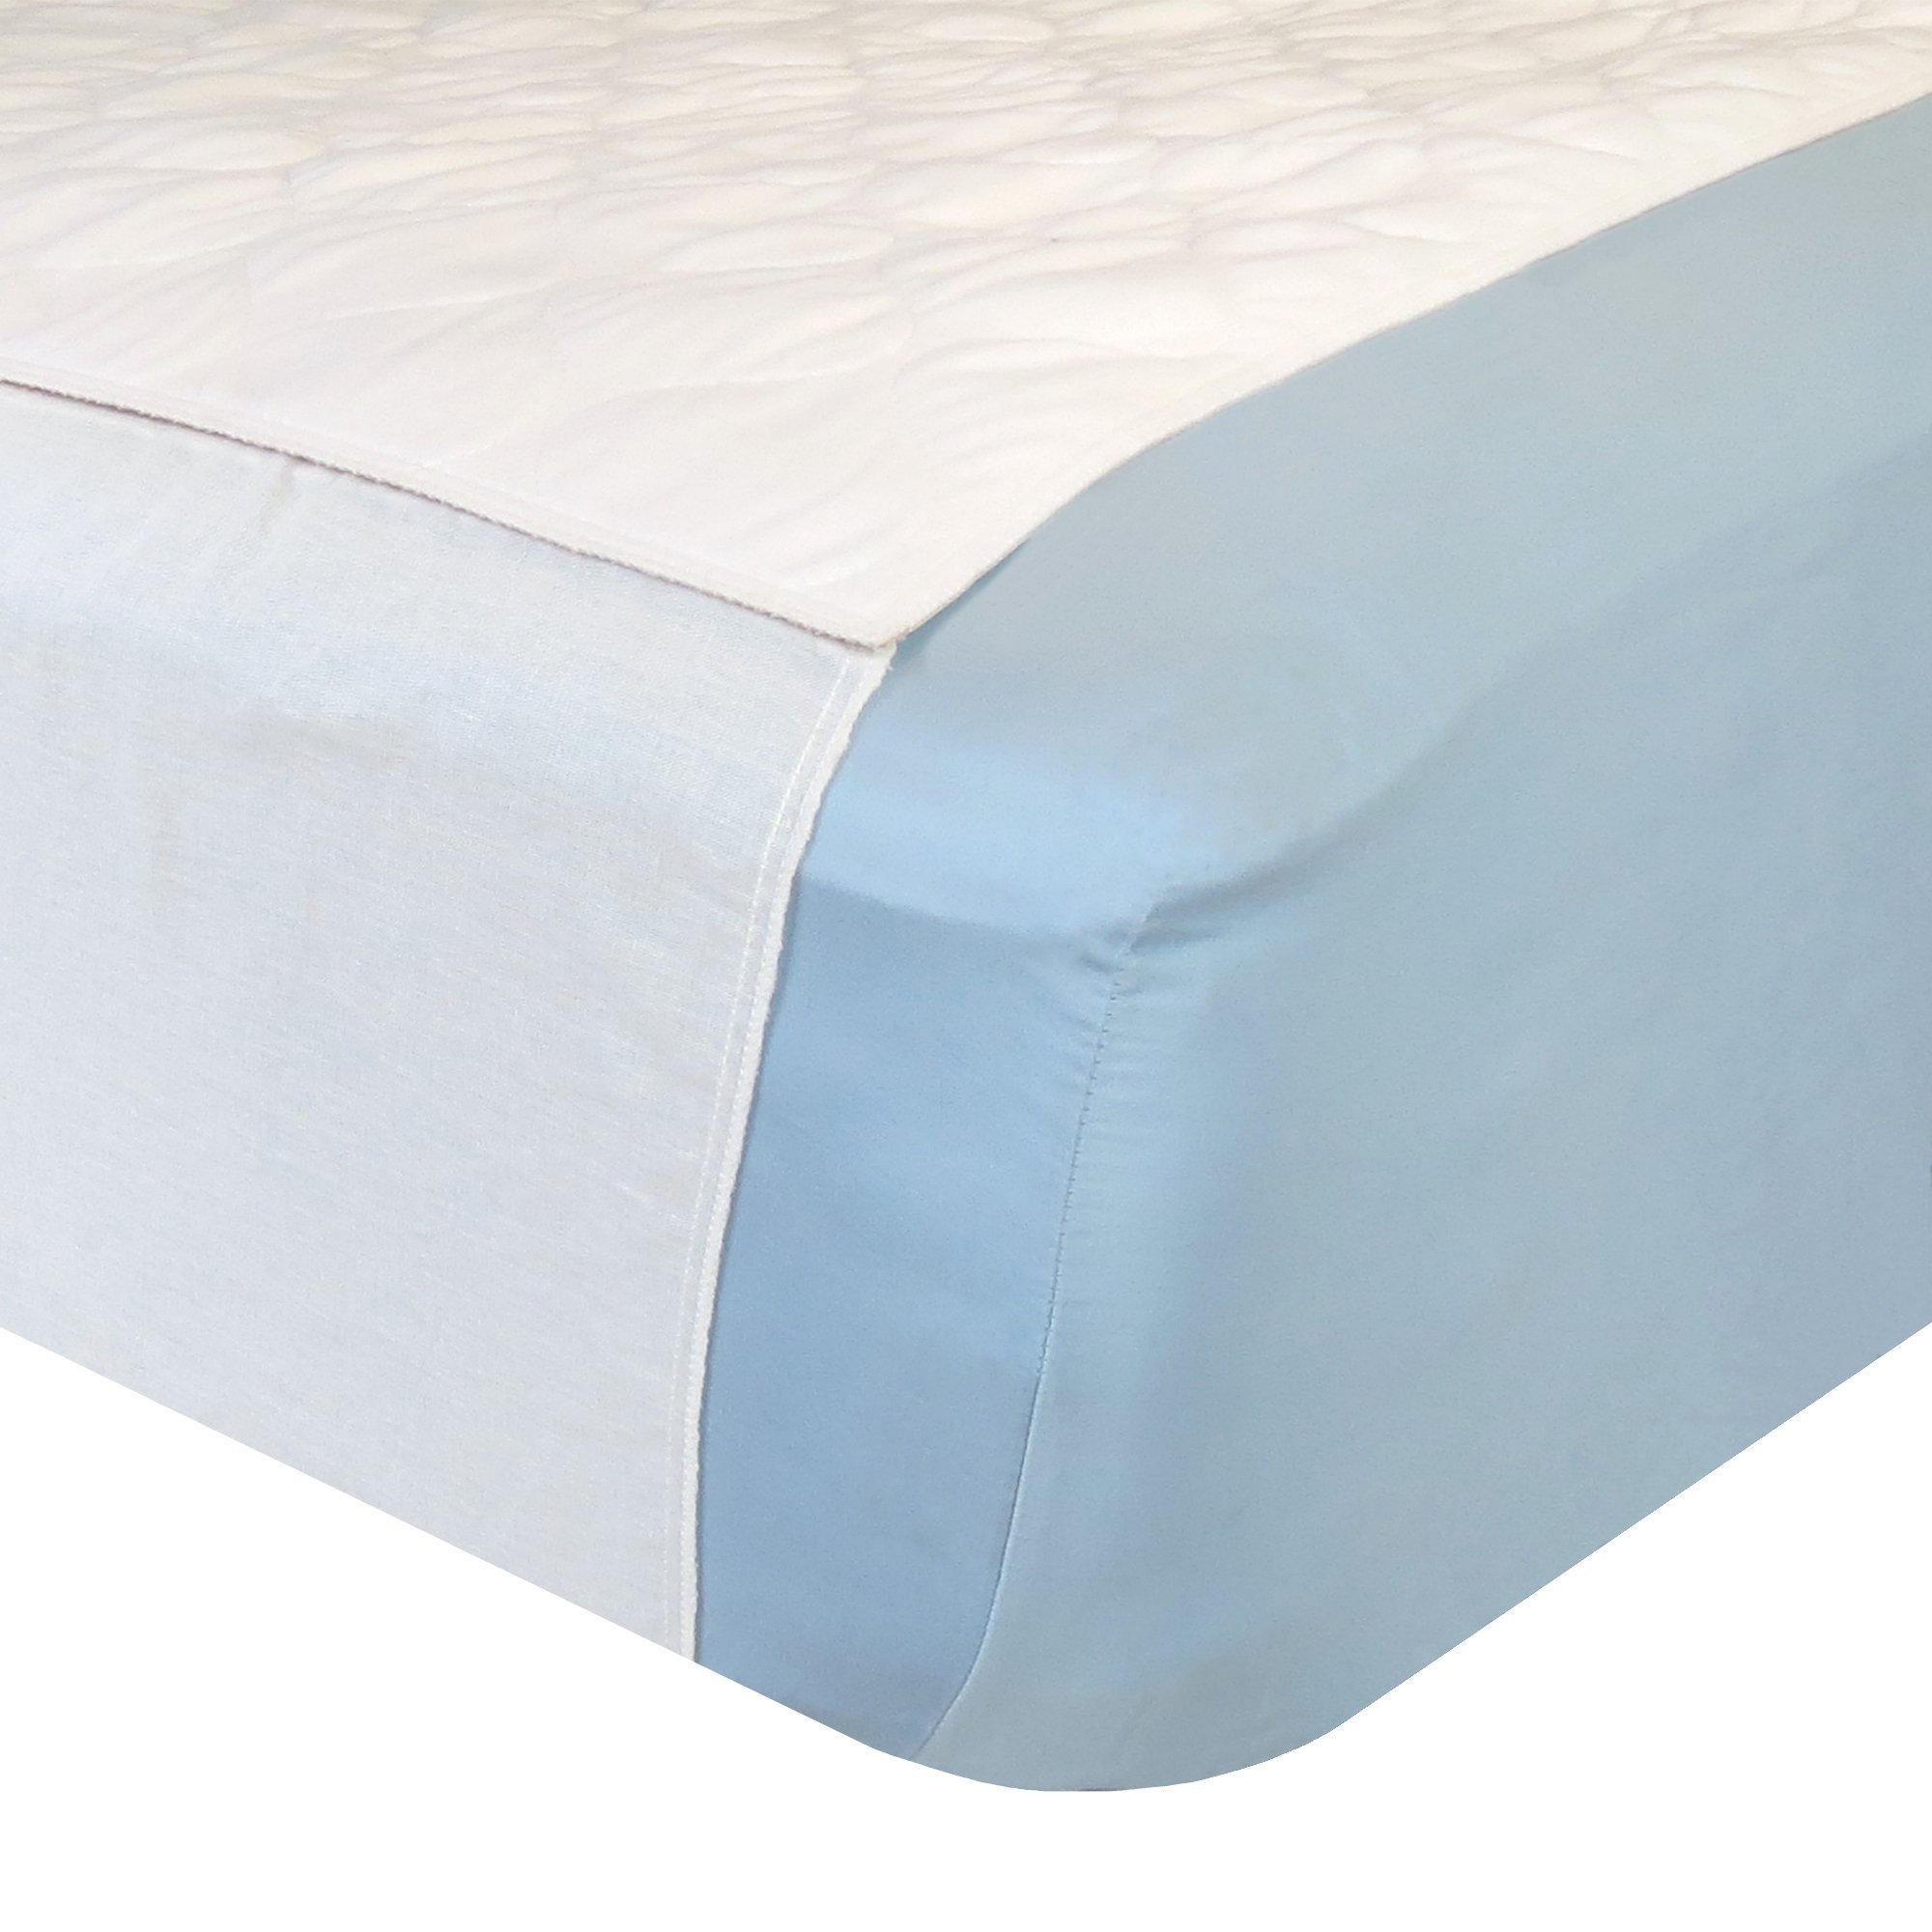 Dry Defender Saddle Style Waterproof Mattress Pad & Sheet Protector - 34 x 36 inches - Absorbs 6 Cups